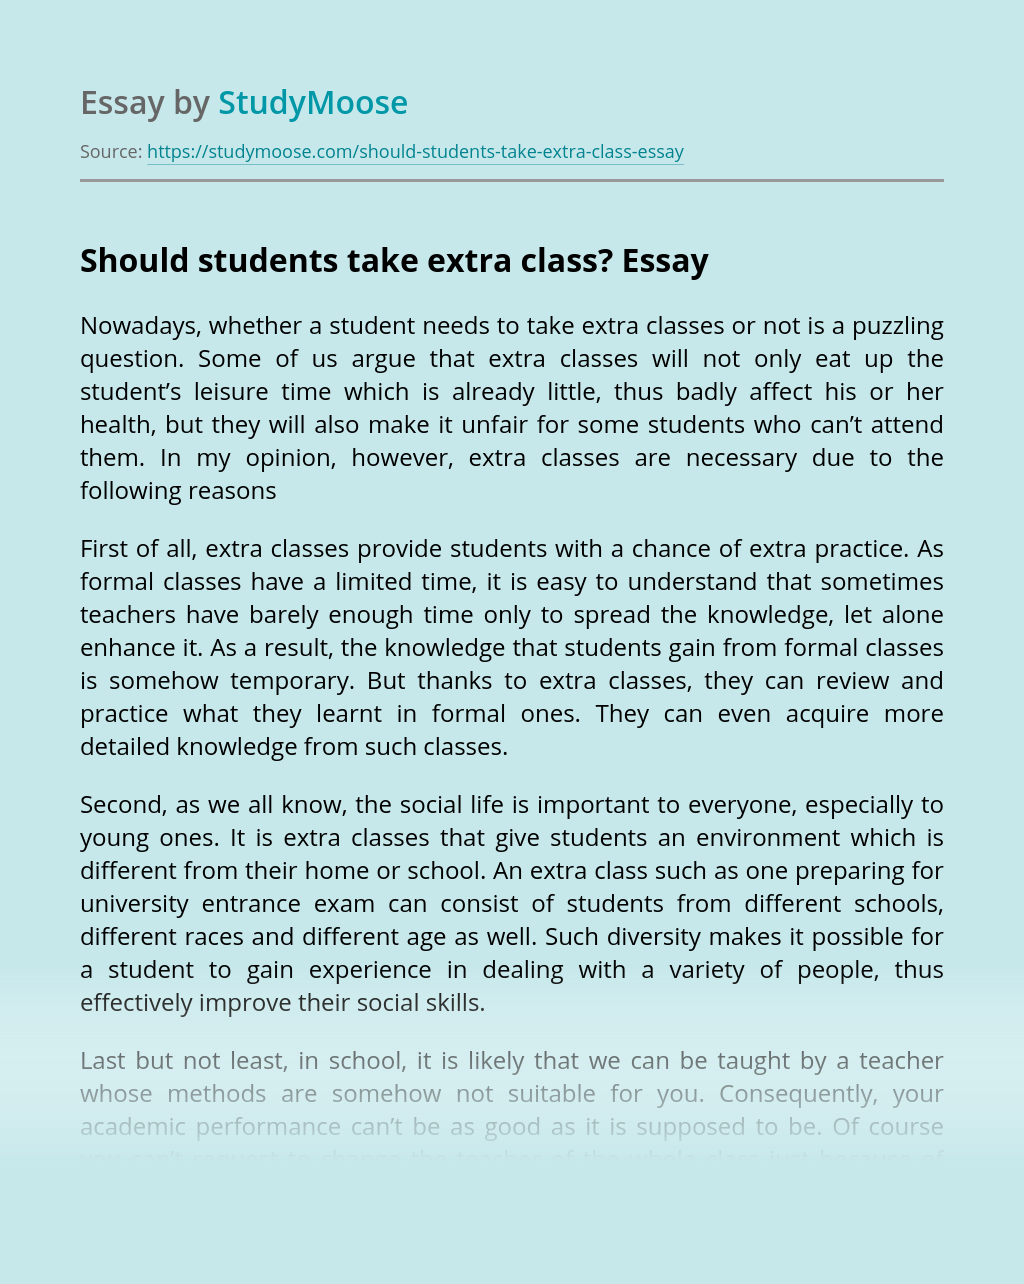 Should Students Take Extra Class?